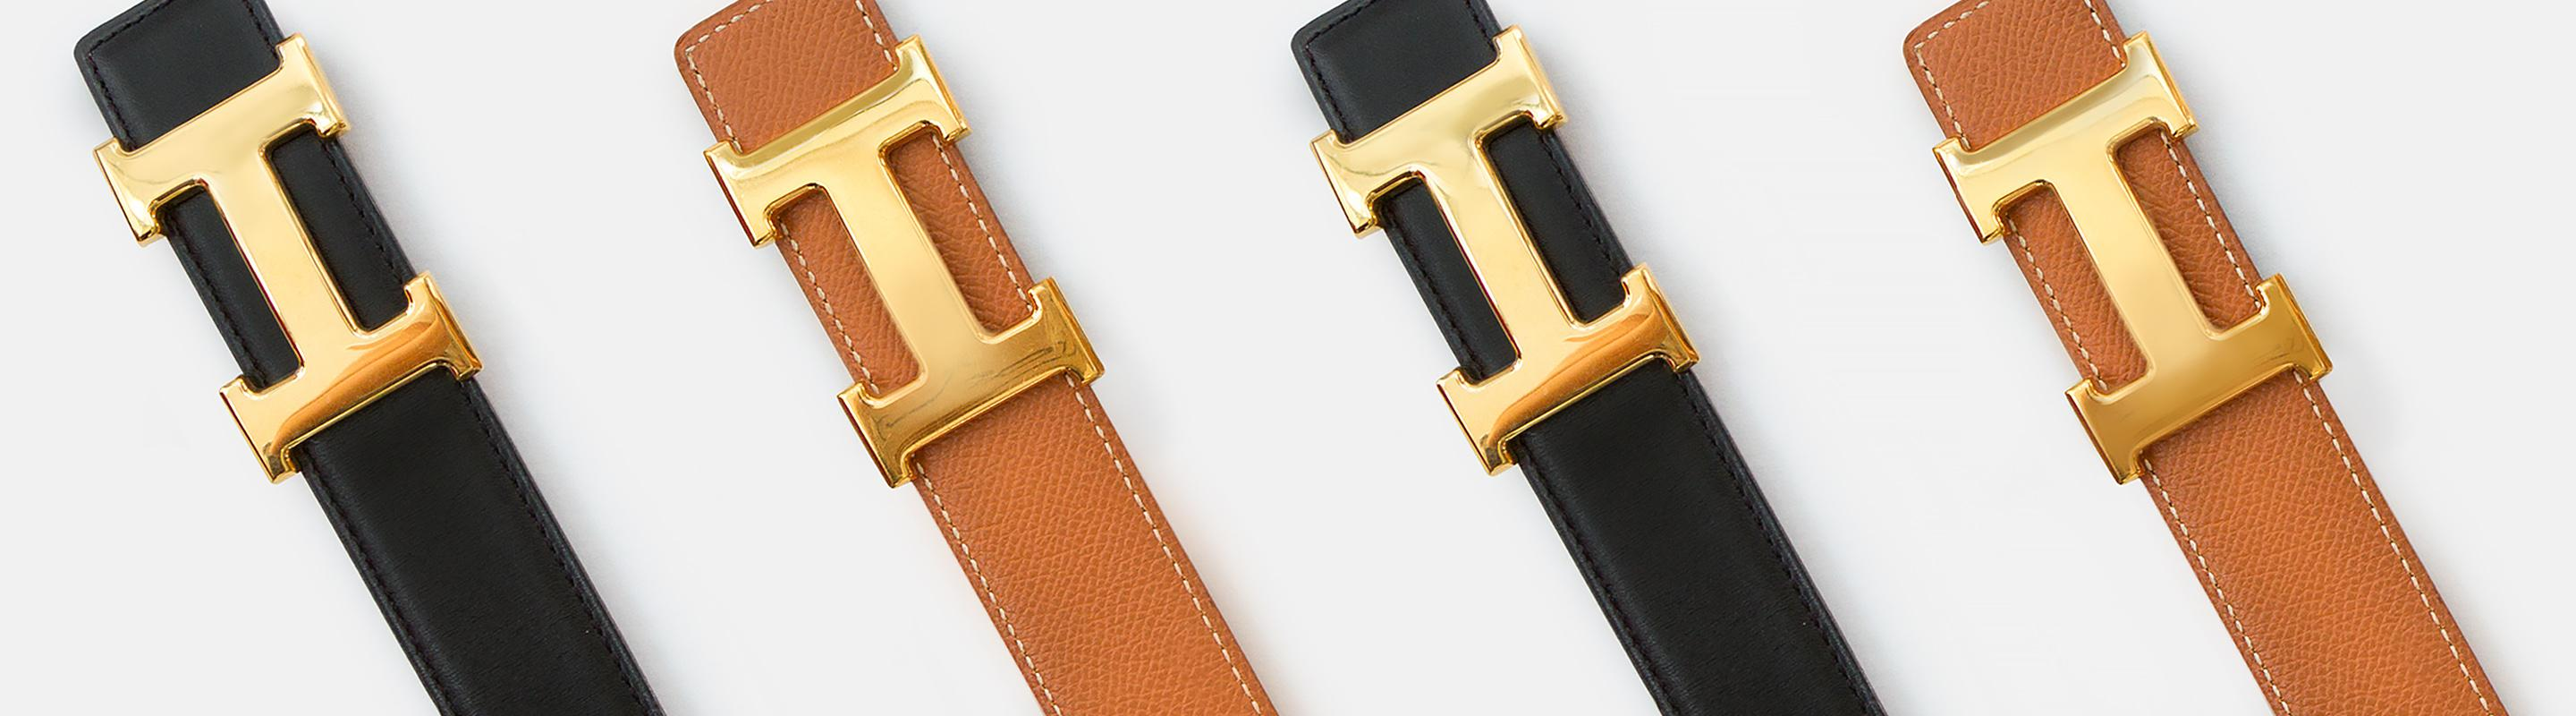 hermes wallet - Hermes Belts on Sale - Up to 70% off at Tradesy